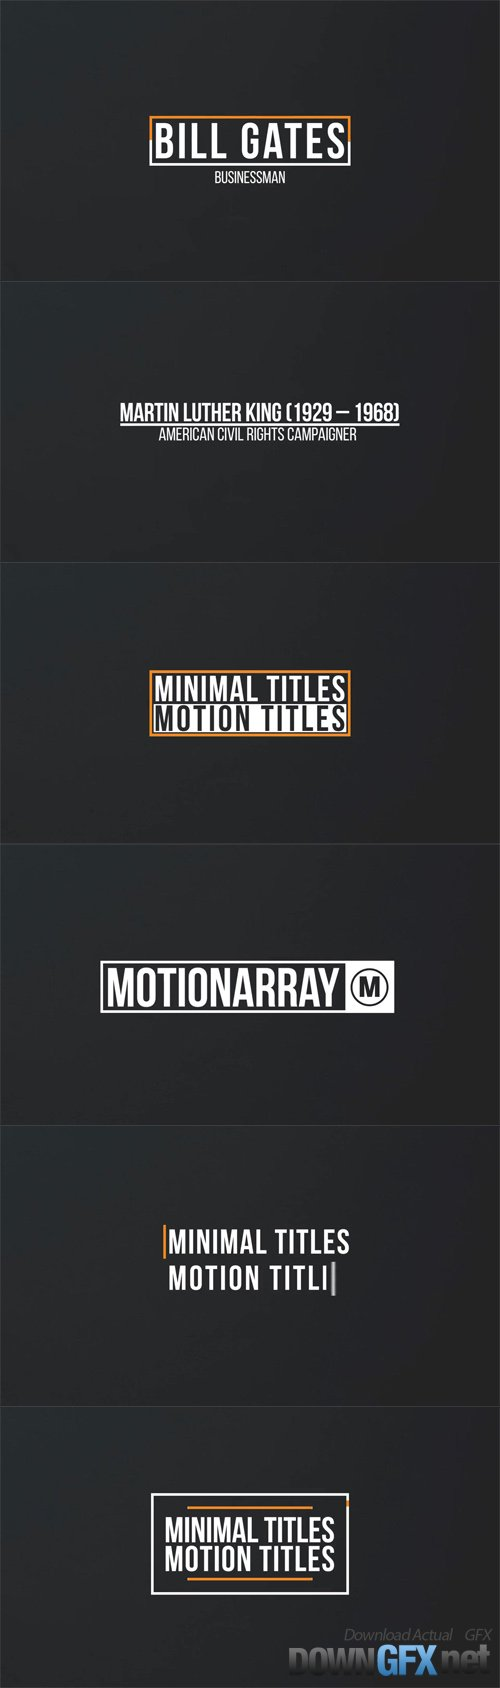 AE Template - Minimal Motion Titles